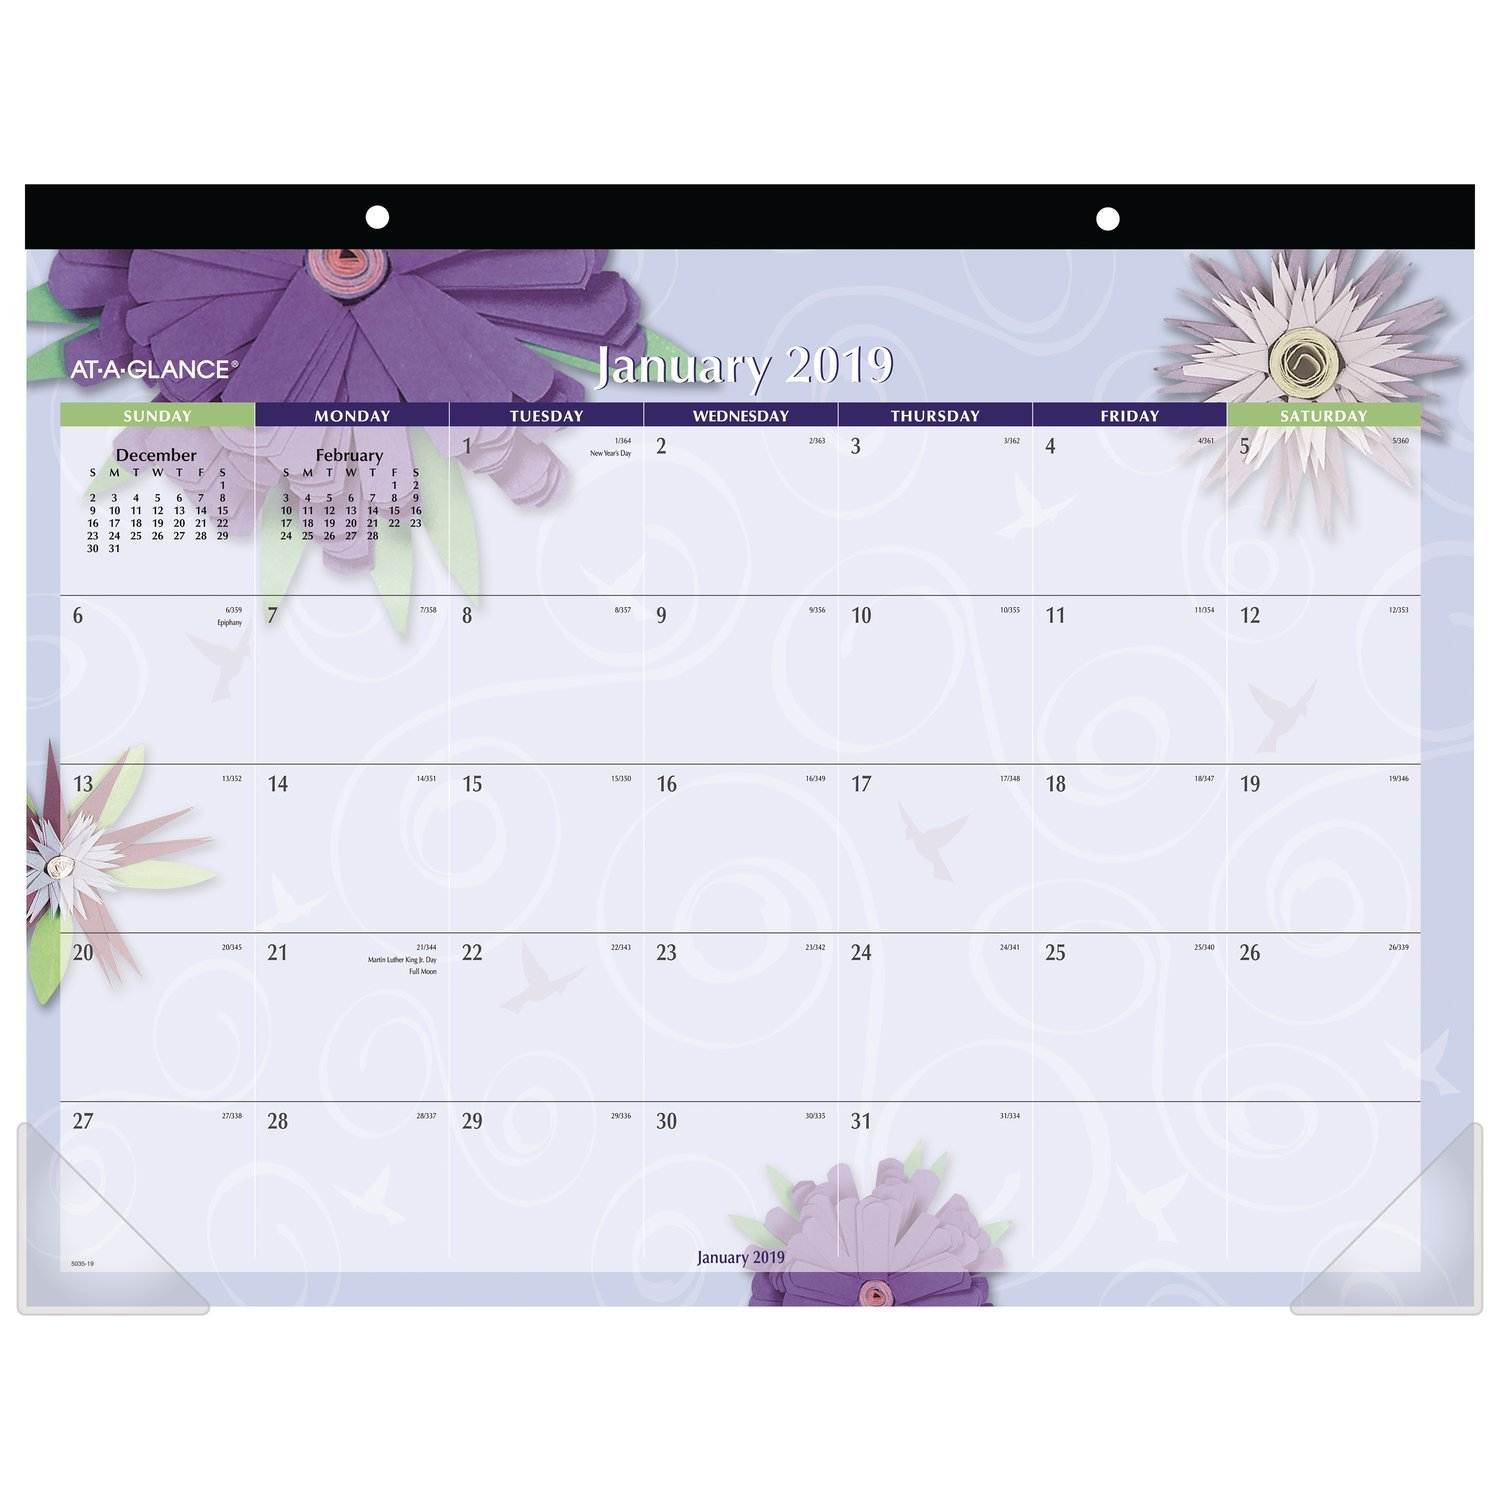 AT-A-GLANCE 2019 Monthly Desk Pad Calendar, 22'' x 17'', Standard, Paper Flowers (5035)